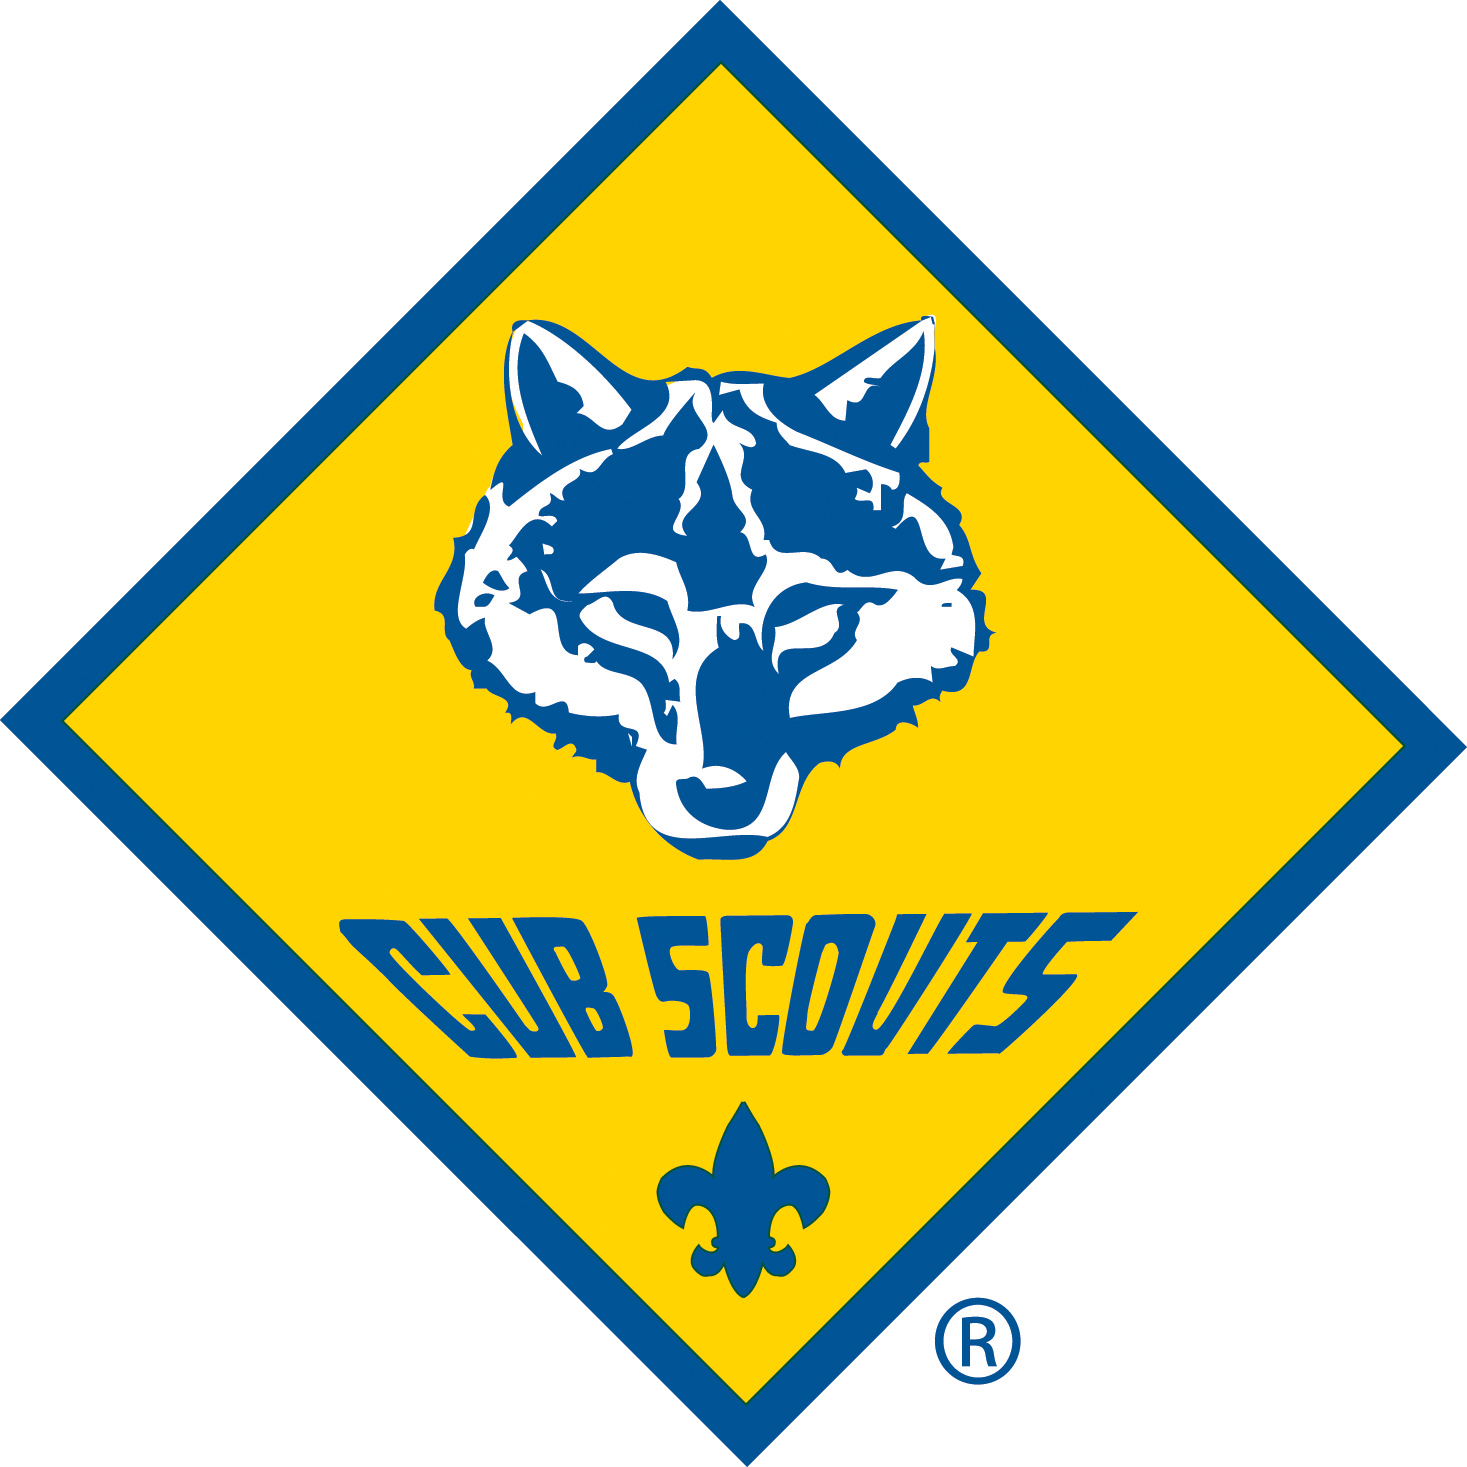 Wolf clipart westside Result scout Image Troop Home